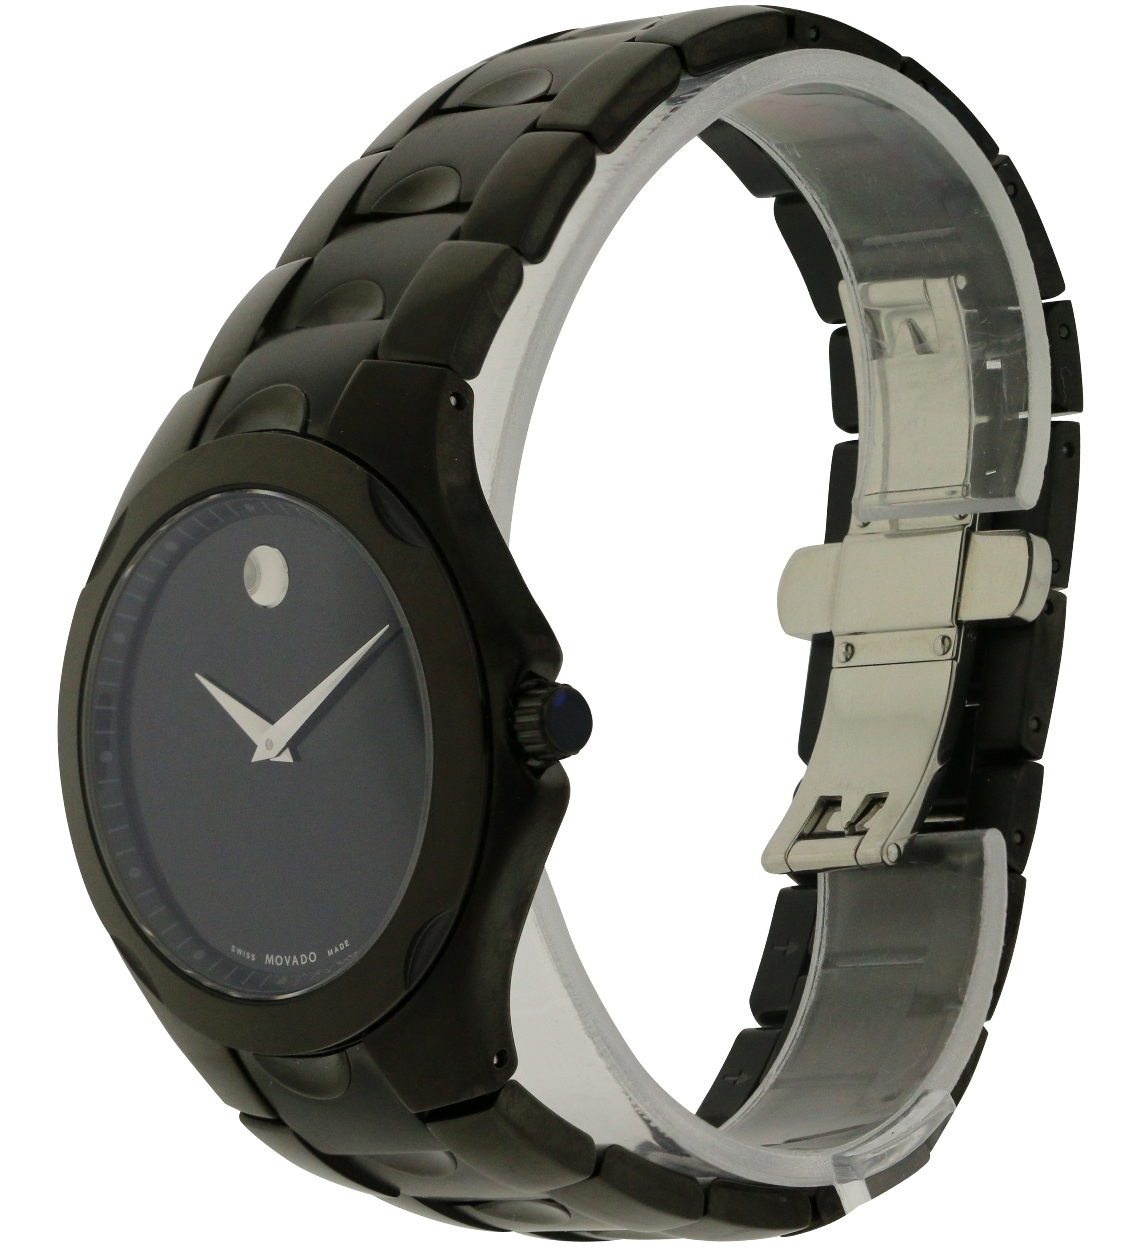 steel bz watch silver watches stainless marcus sport prod p movado luno neiman black